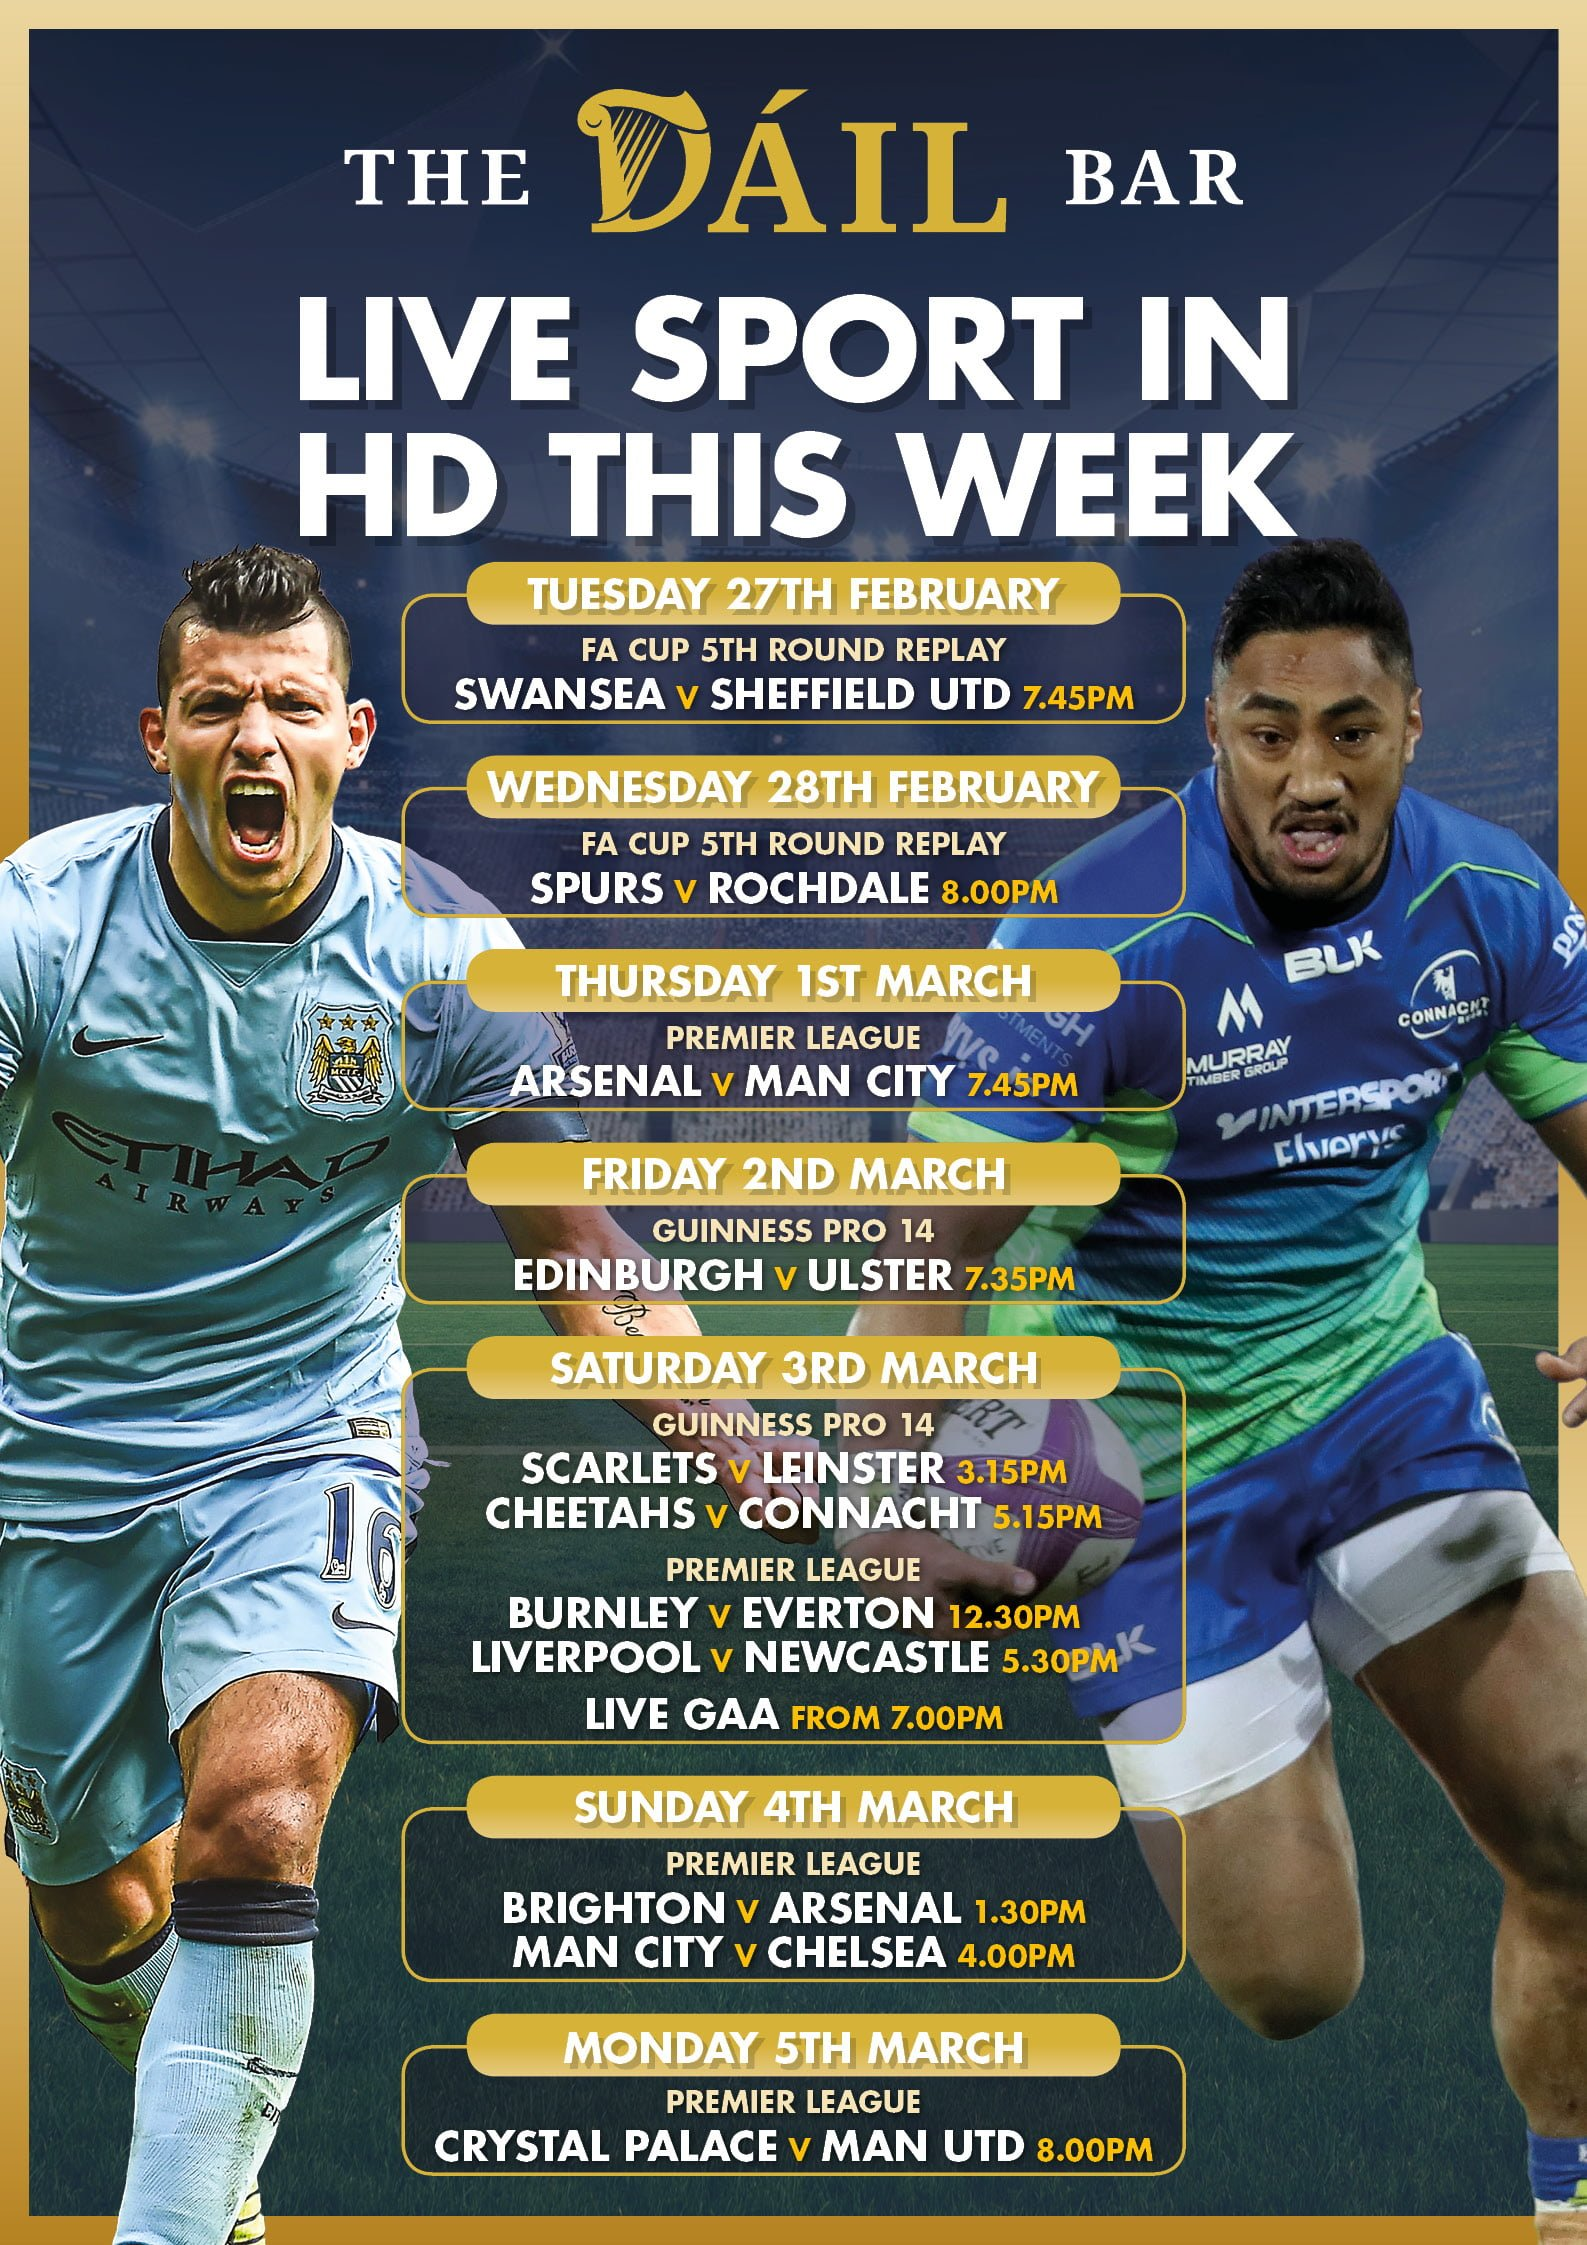 DB Sports Posters - WE Mon 05 March 18 - FACEBOOK - The Dail Bar